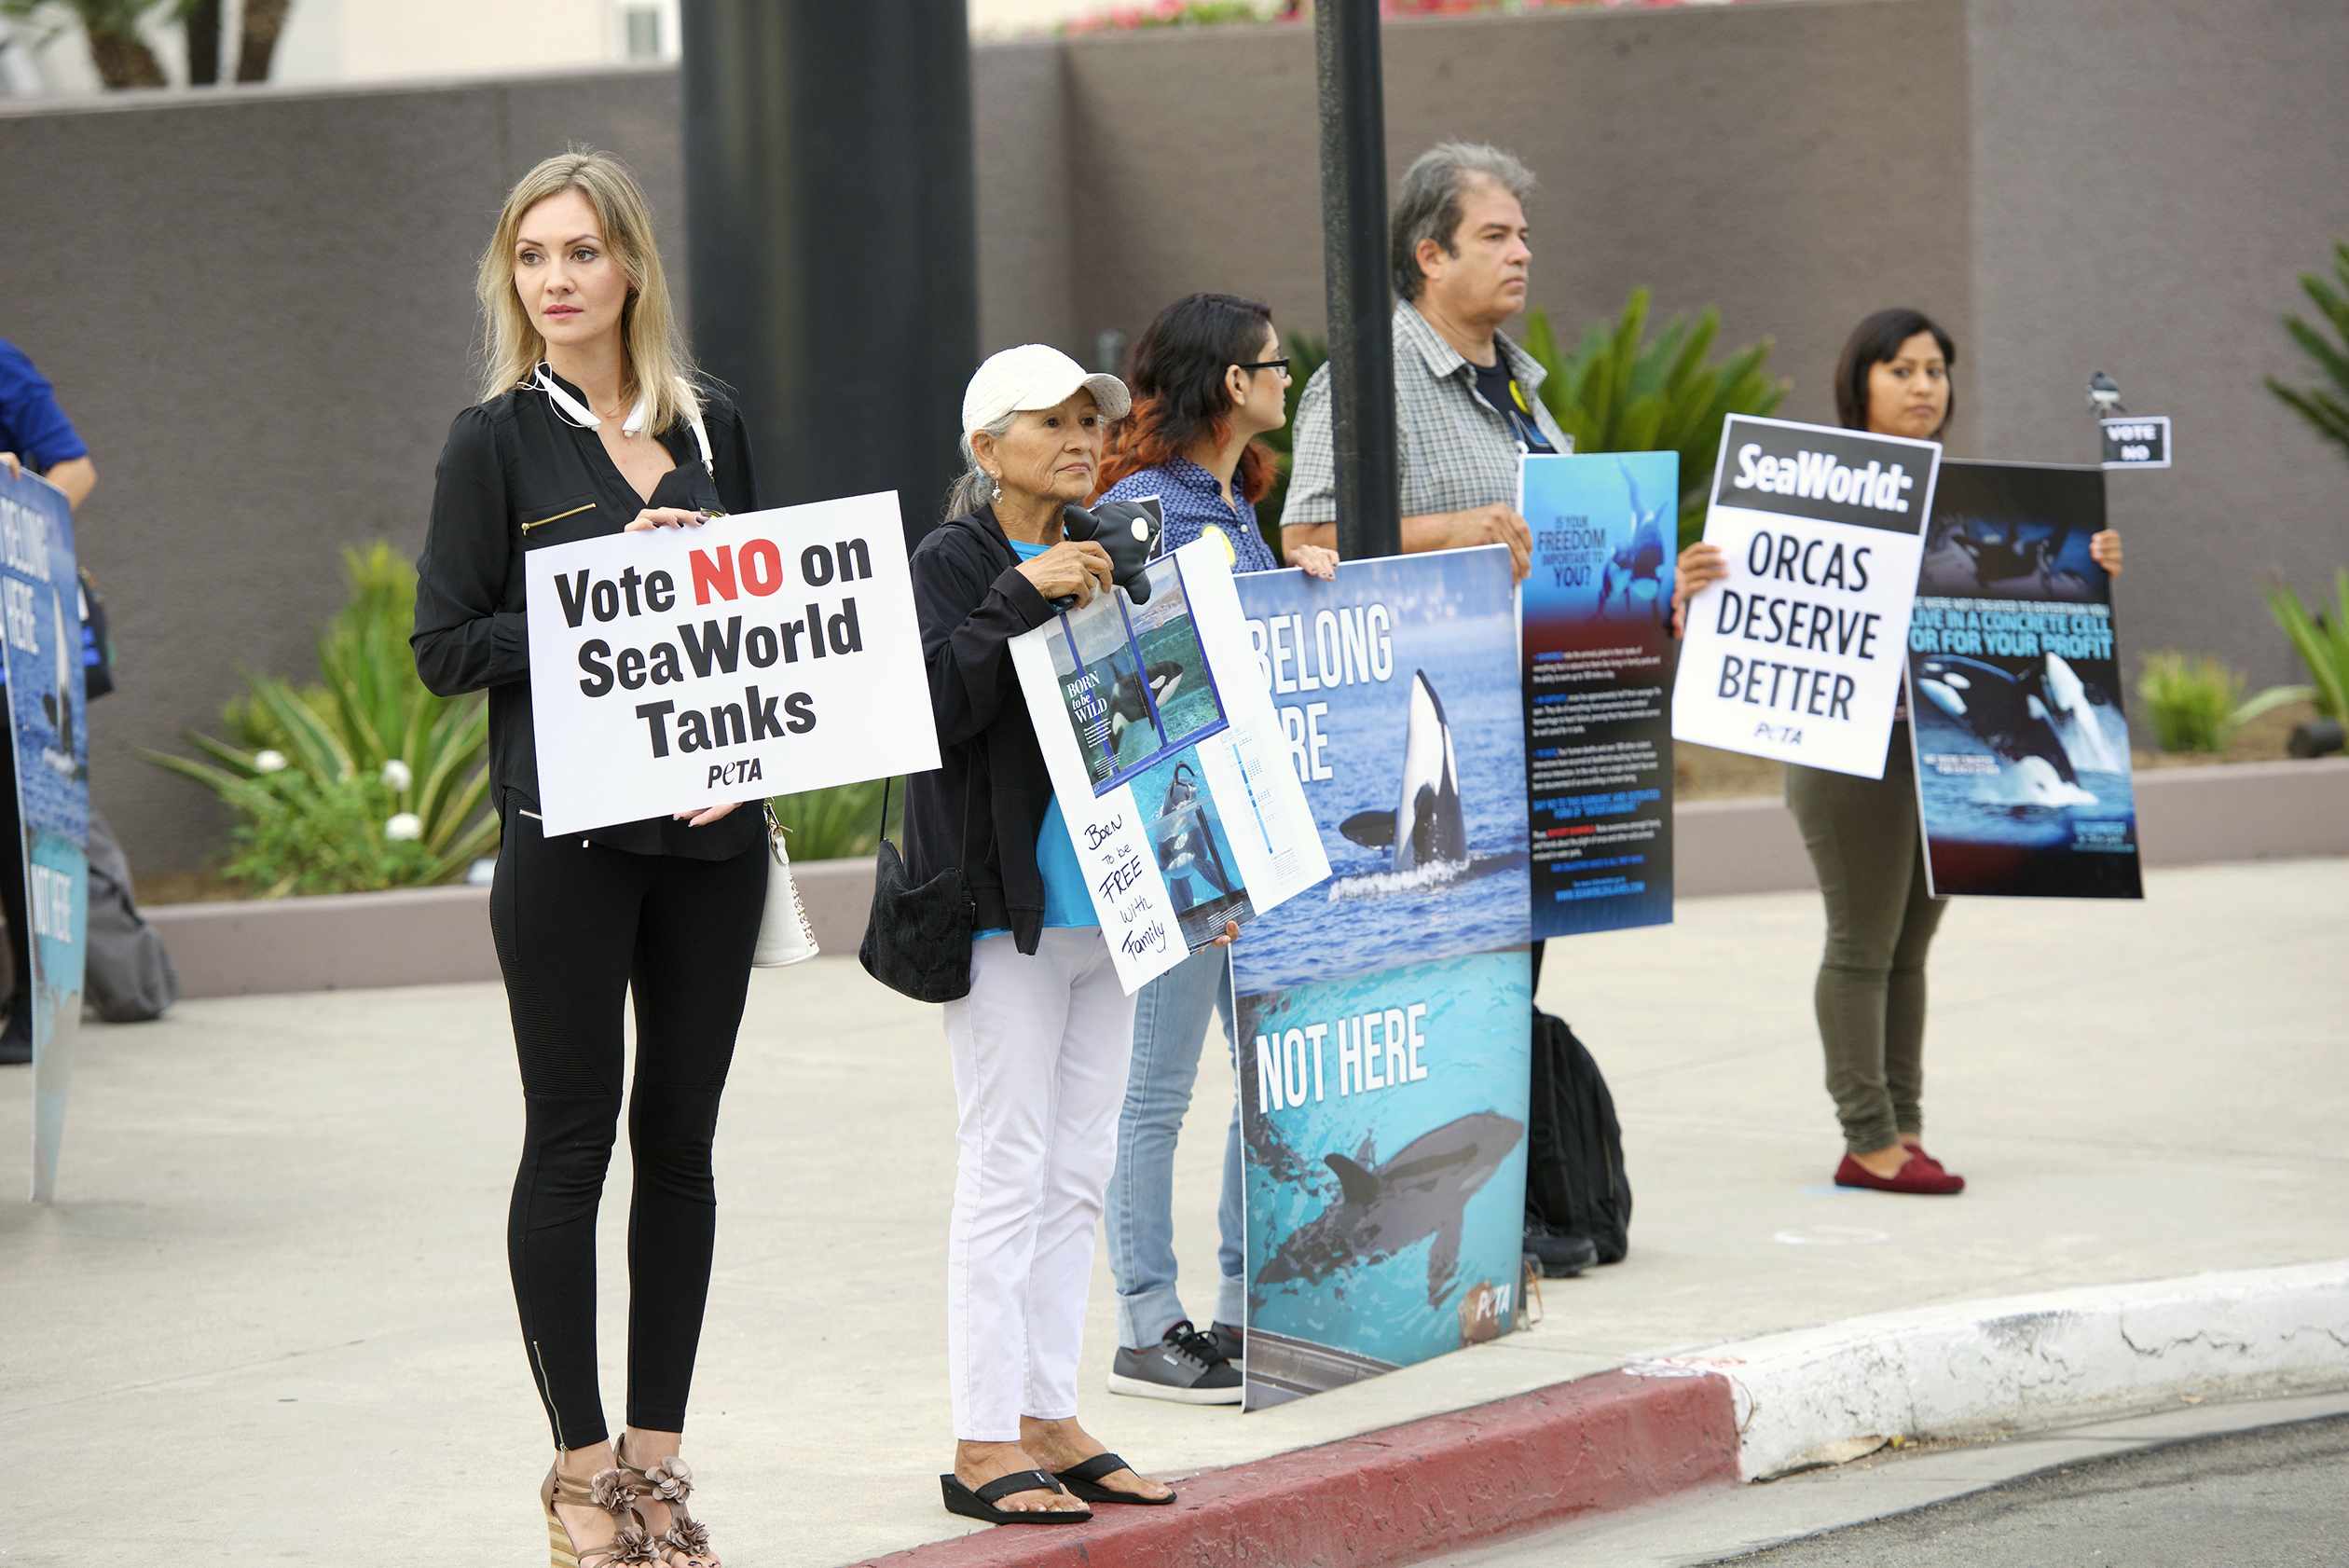 SeaWorld's trained animal shows have long spurred protests (like the one in Long Beach, California)